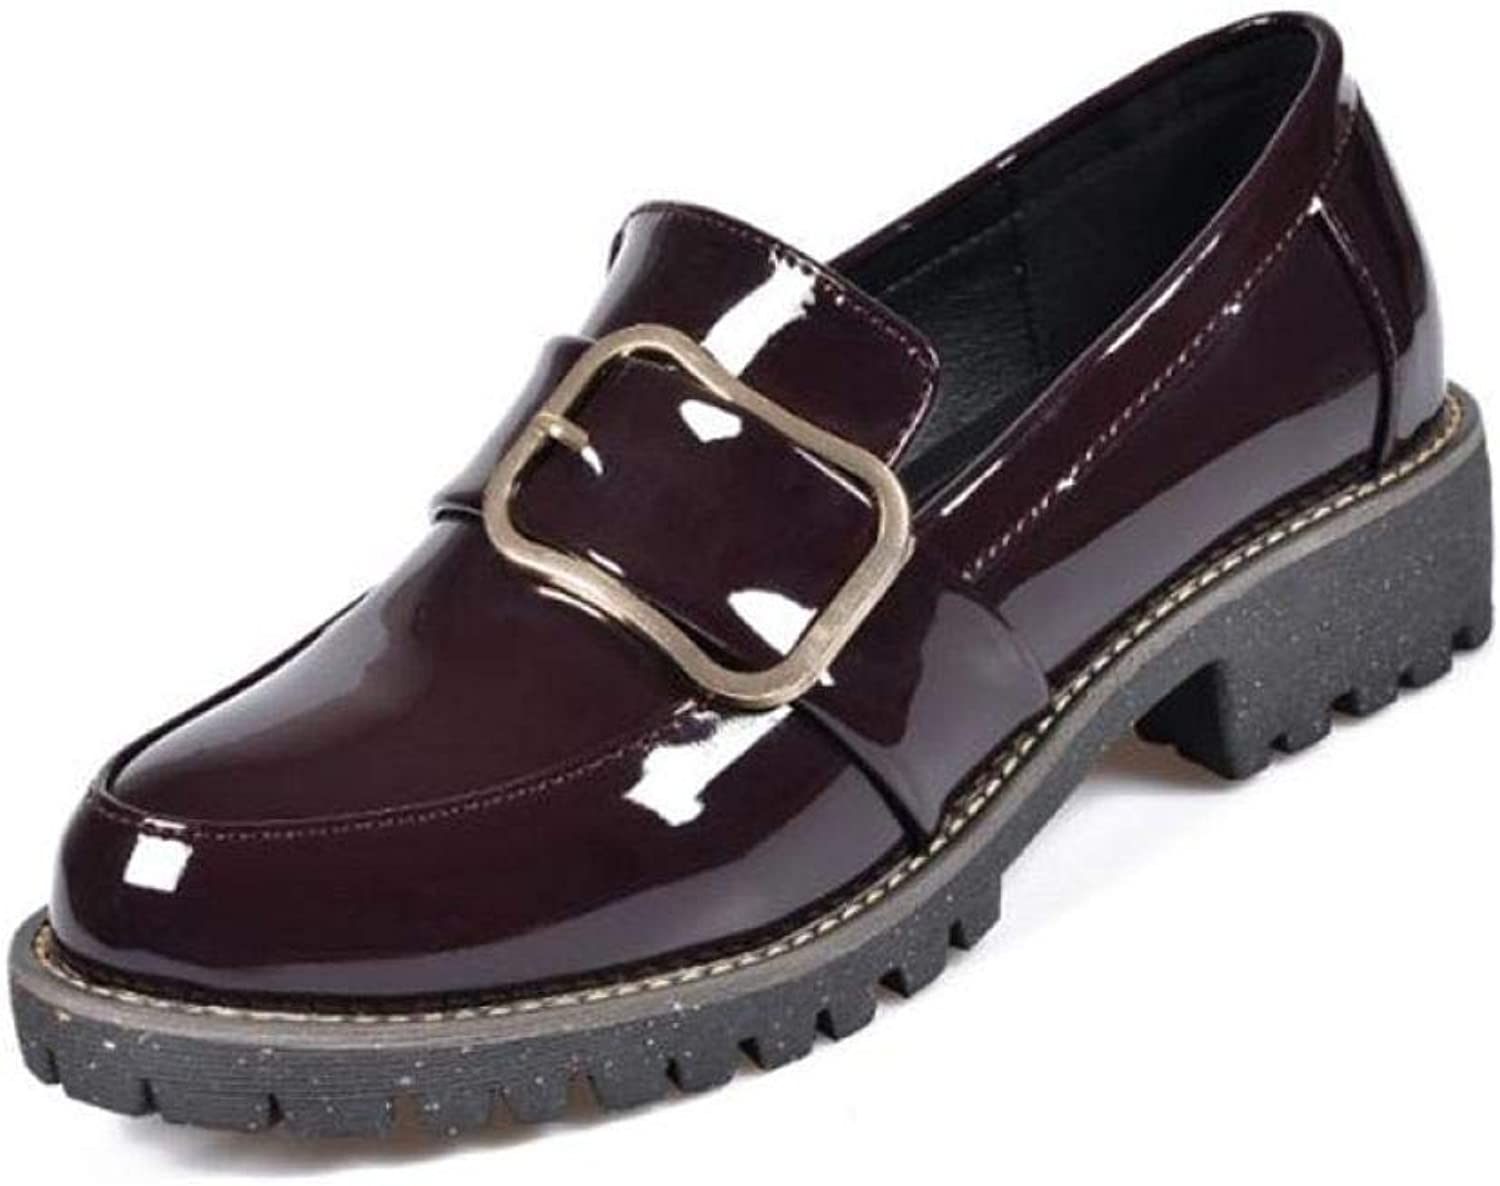 Fay Waters Women's Patent Leather Buckle Loafer shoes Low Heel Round Toe Slip On Casual Oxfords